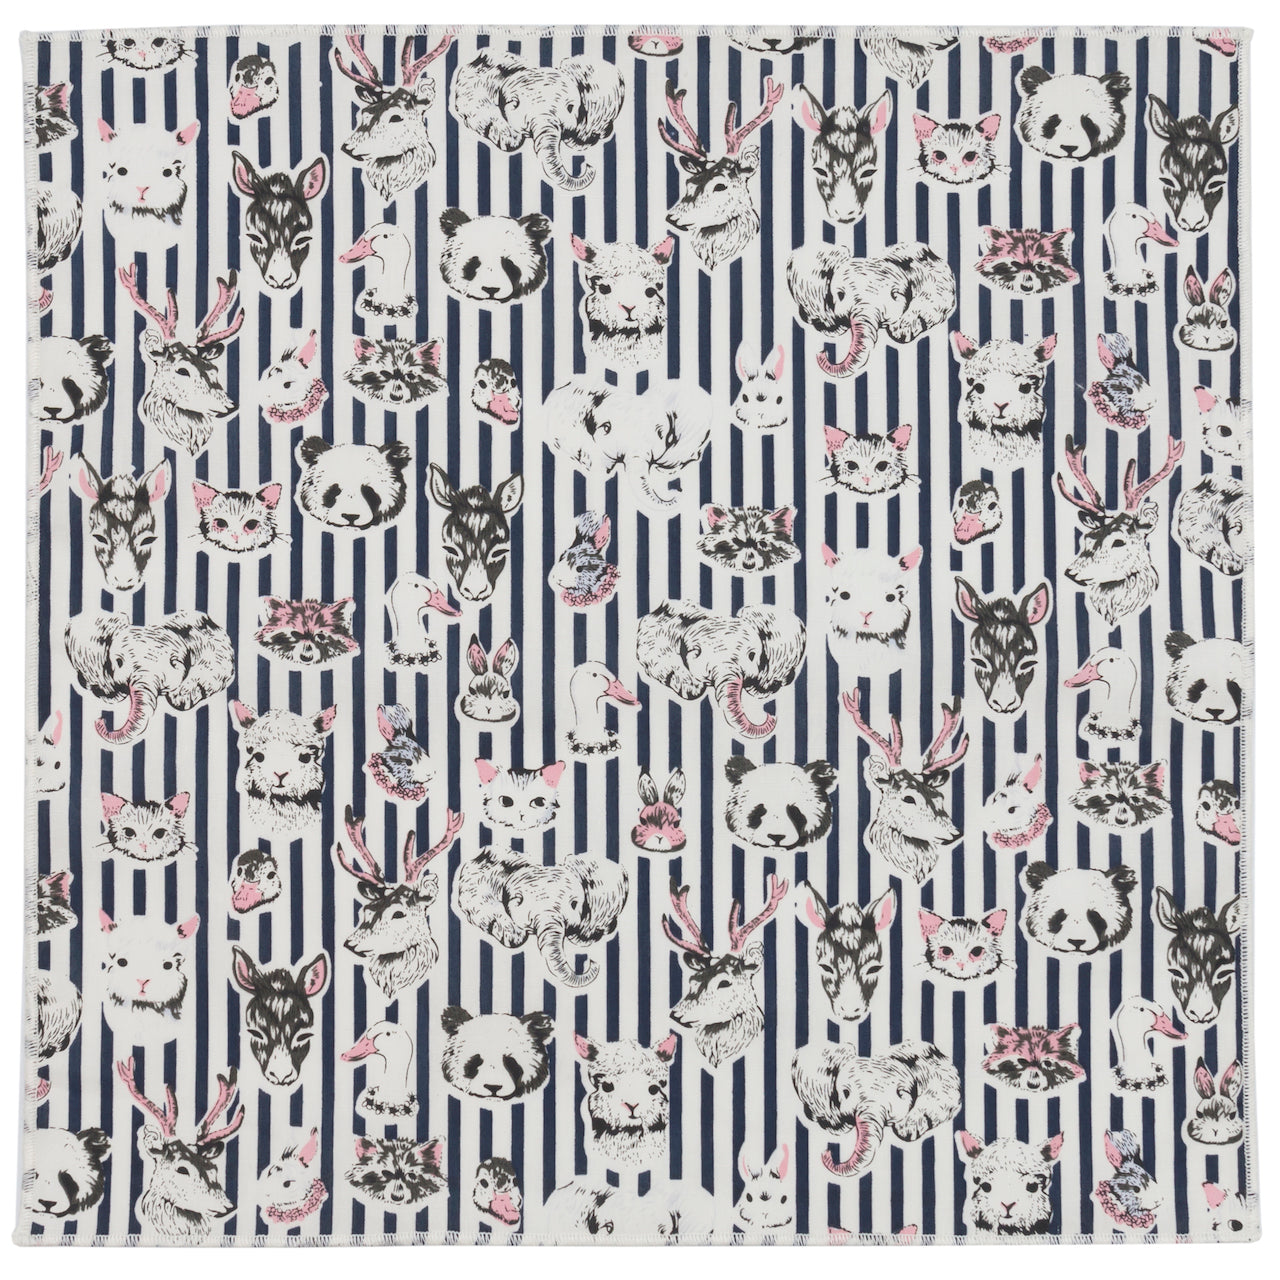 Animals Portraits with Navy Striped Cotton Pocket Square Made in Canada